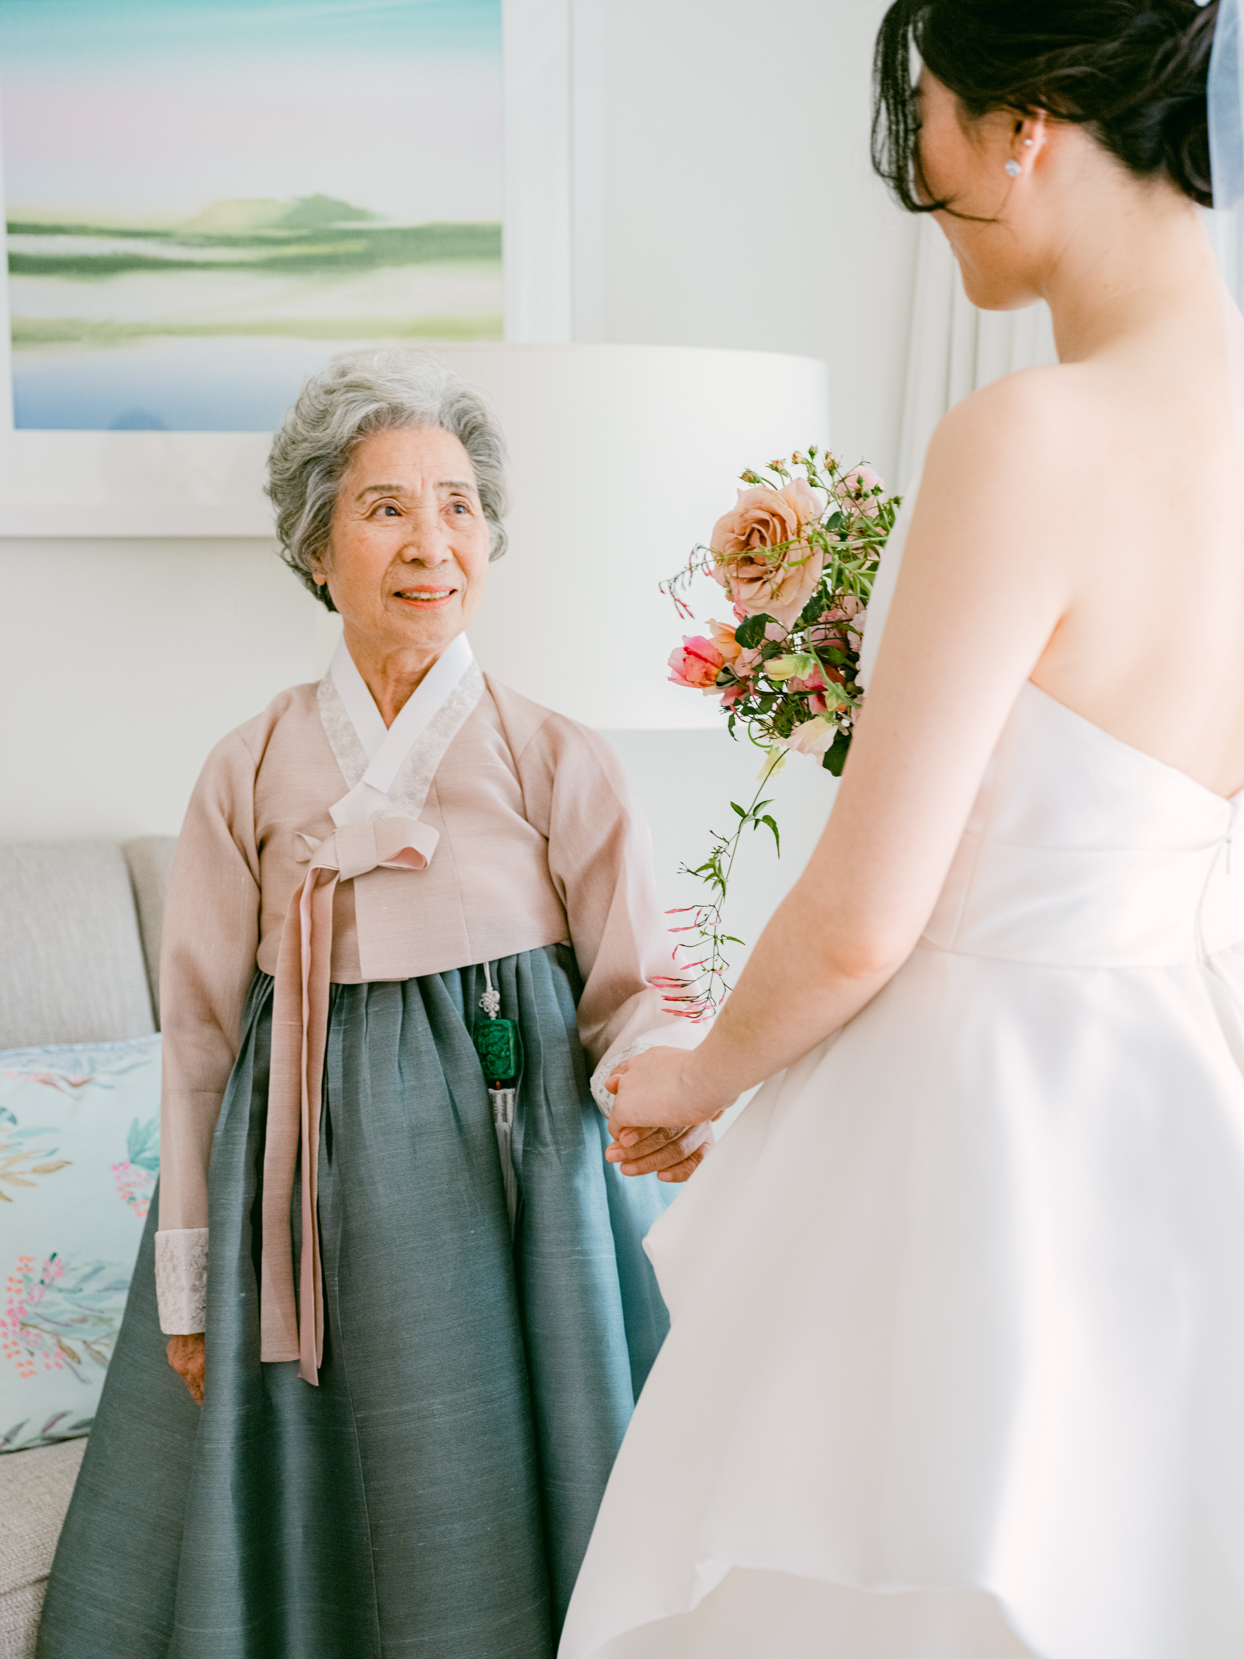 grandmother smiling at bride getting ready